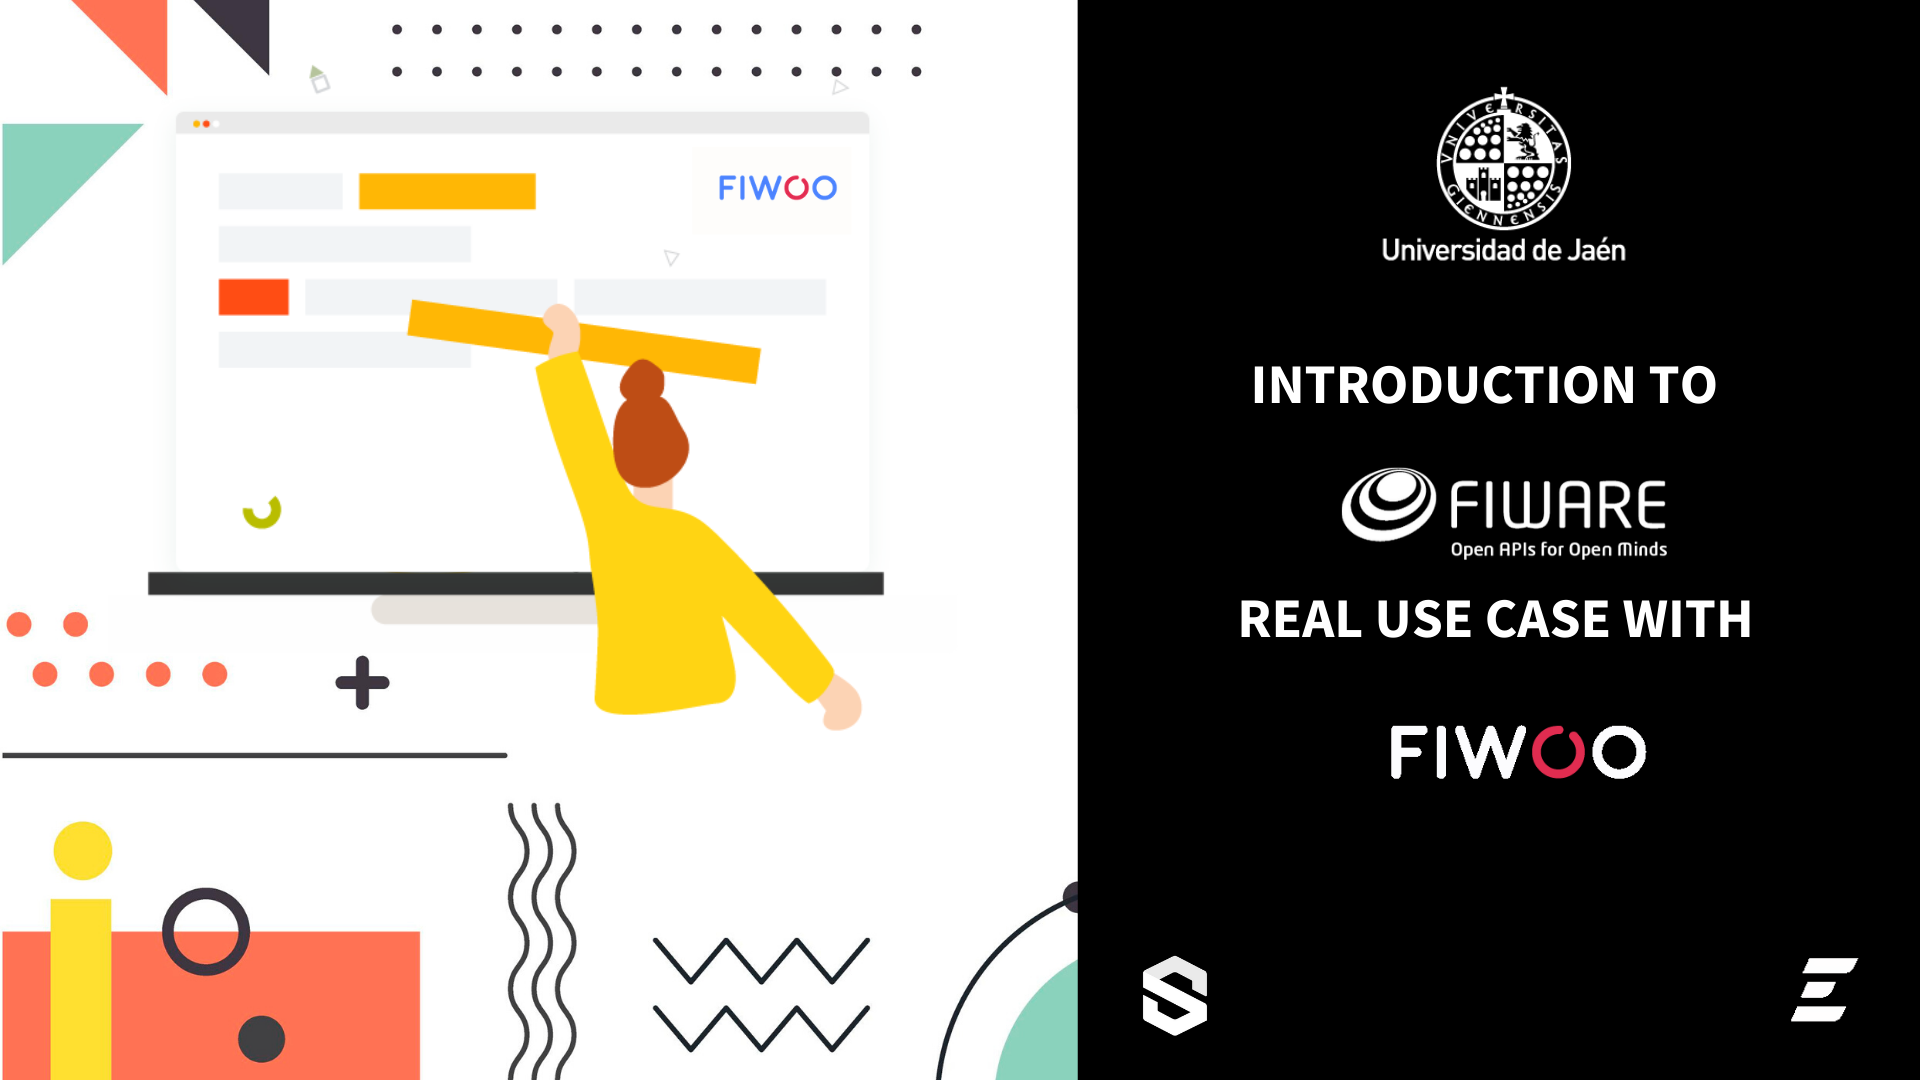 FIWARE and FIWOO